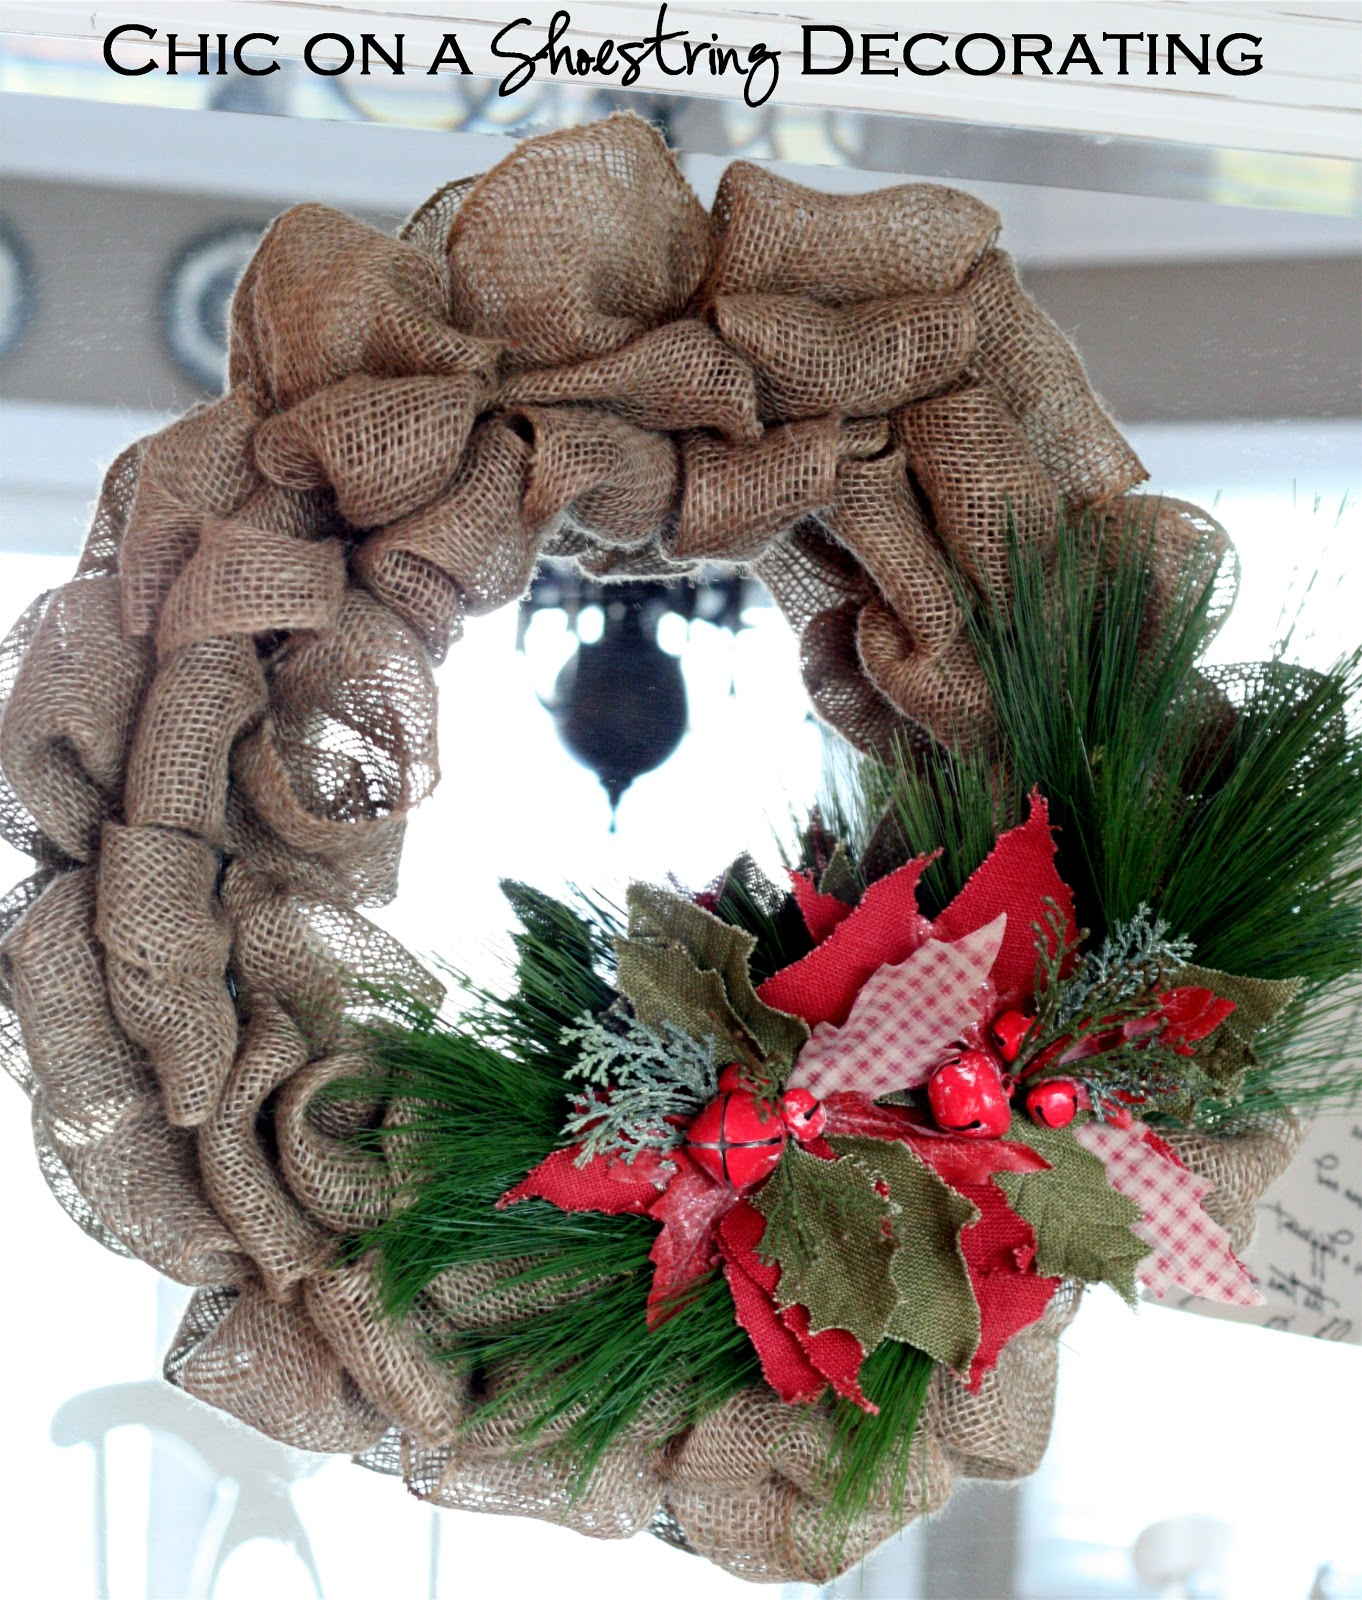 Chic on a shoestring decorating burlap christmas wreath Christmas wreath decorations